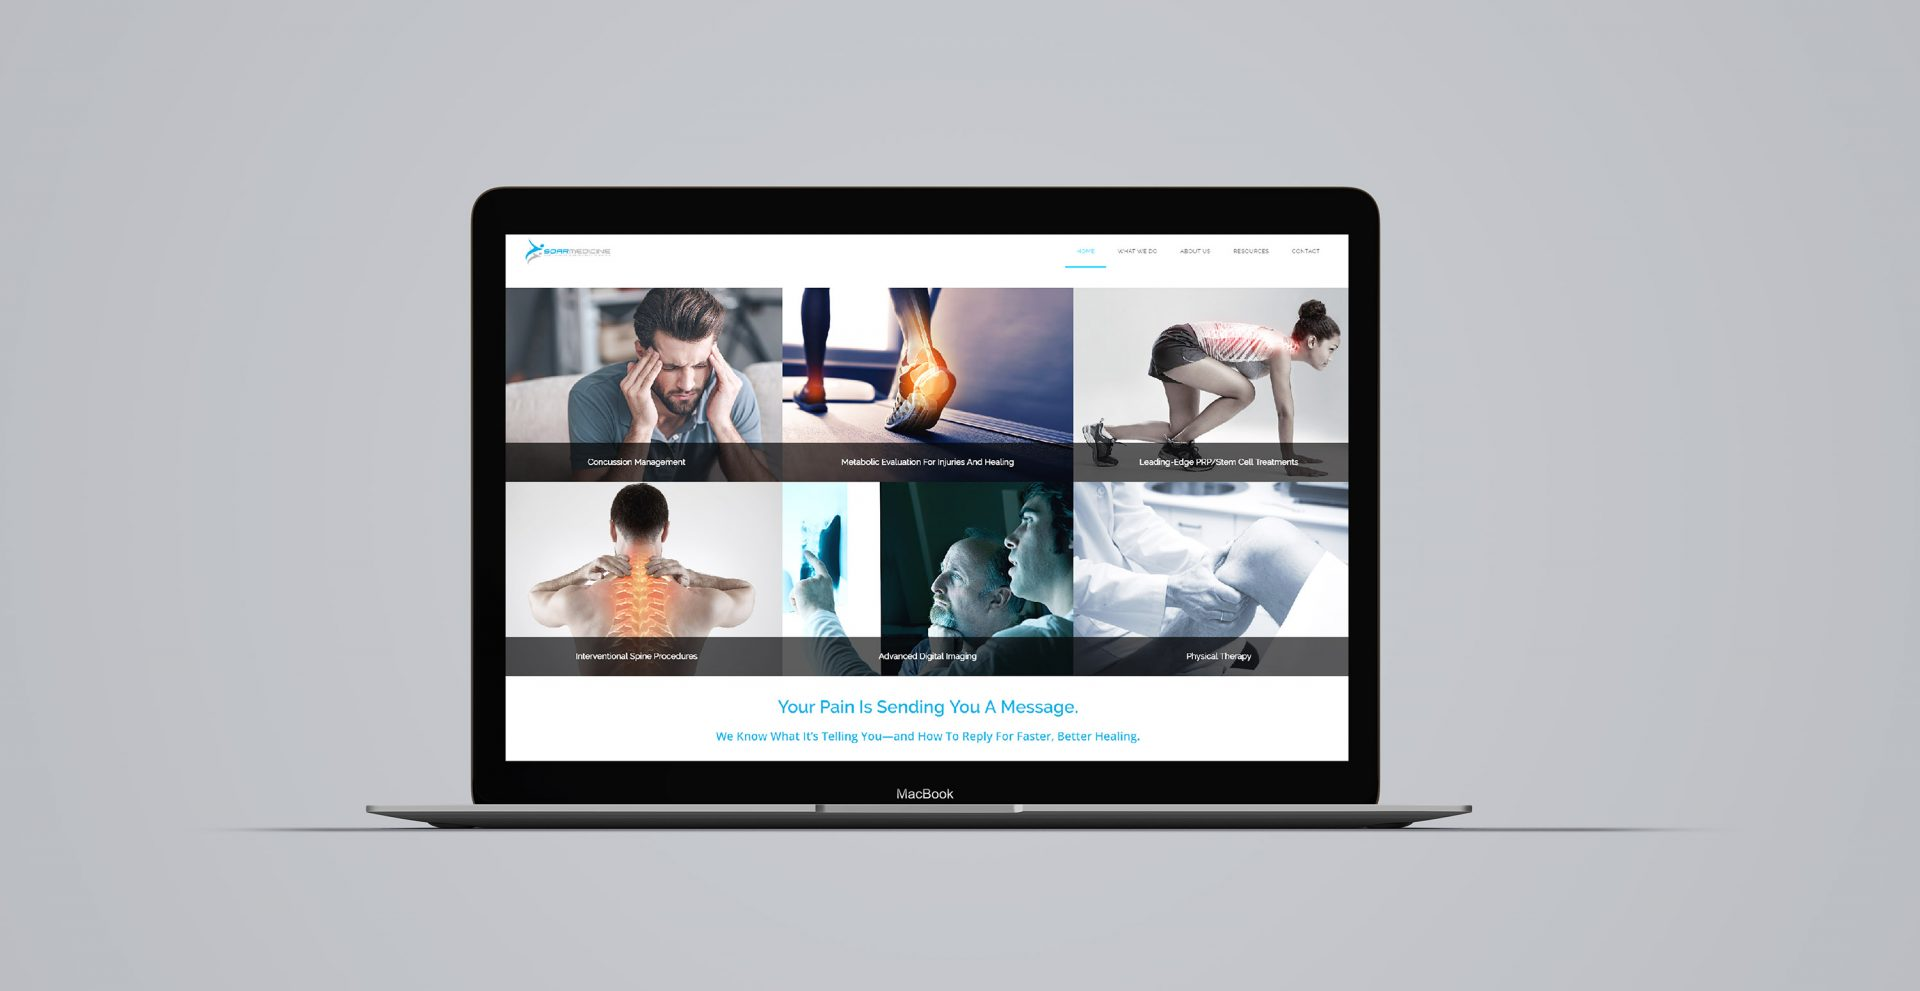 orthopedic treatment options website design